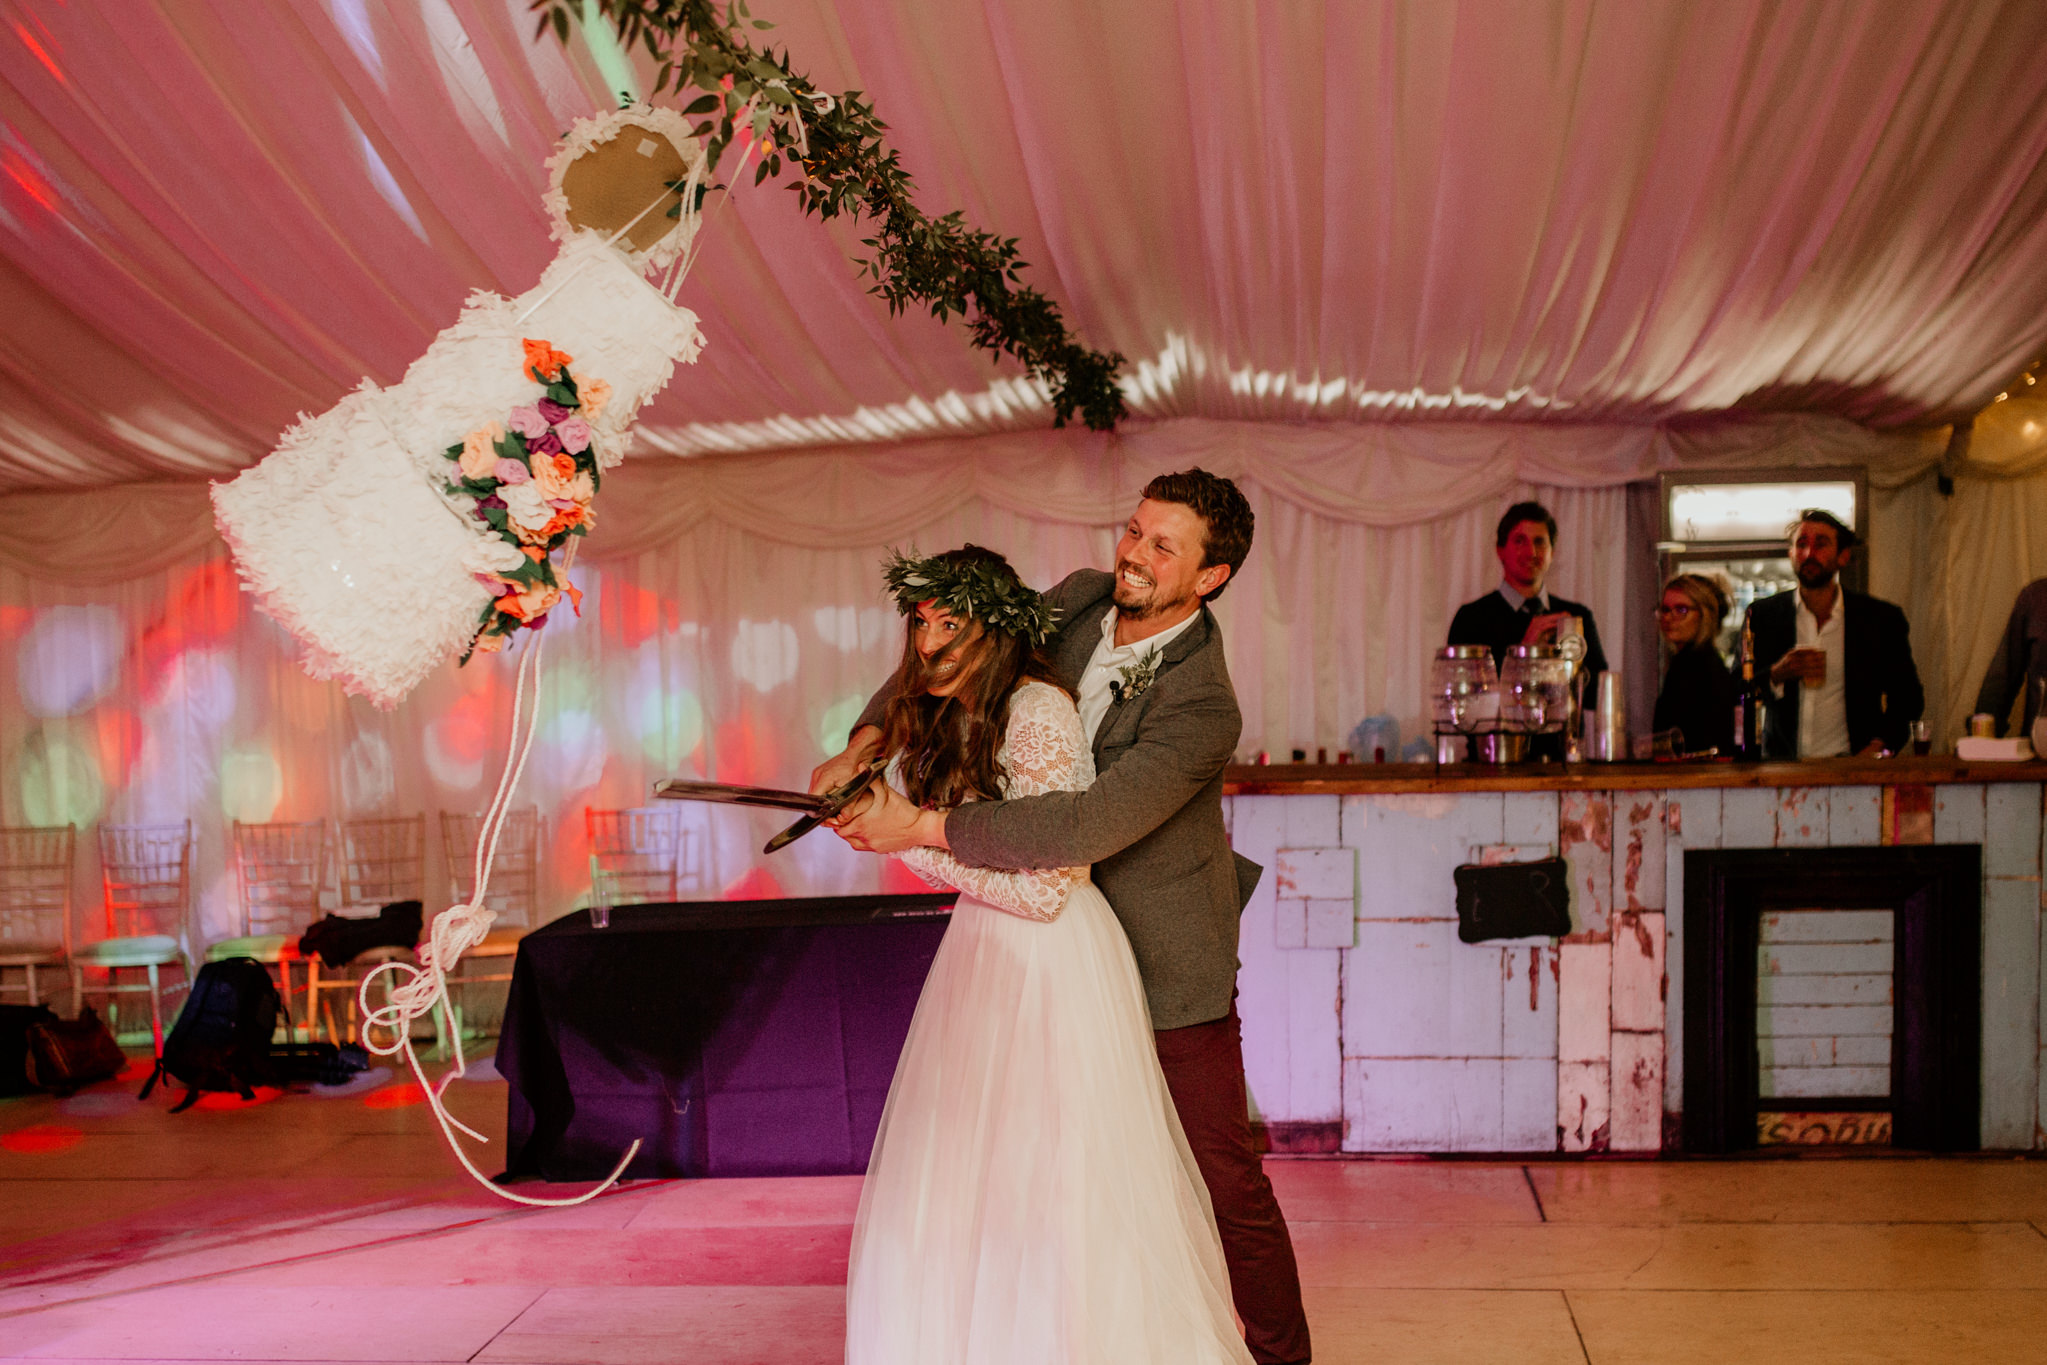 pinata instead of wedding cake for wedding reception entertainment ideas